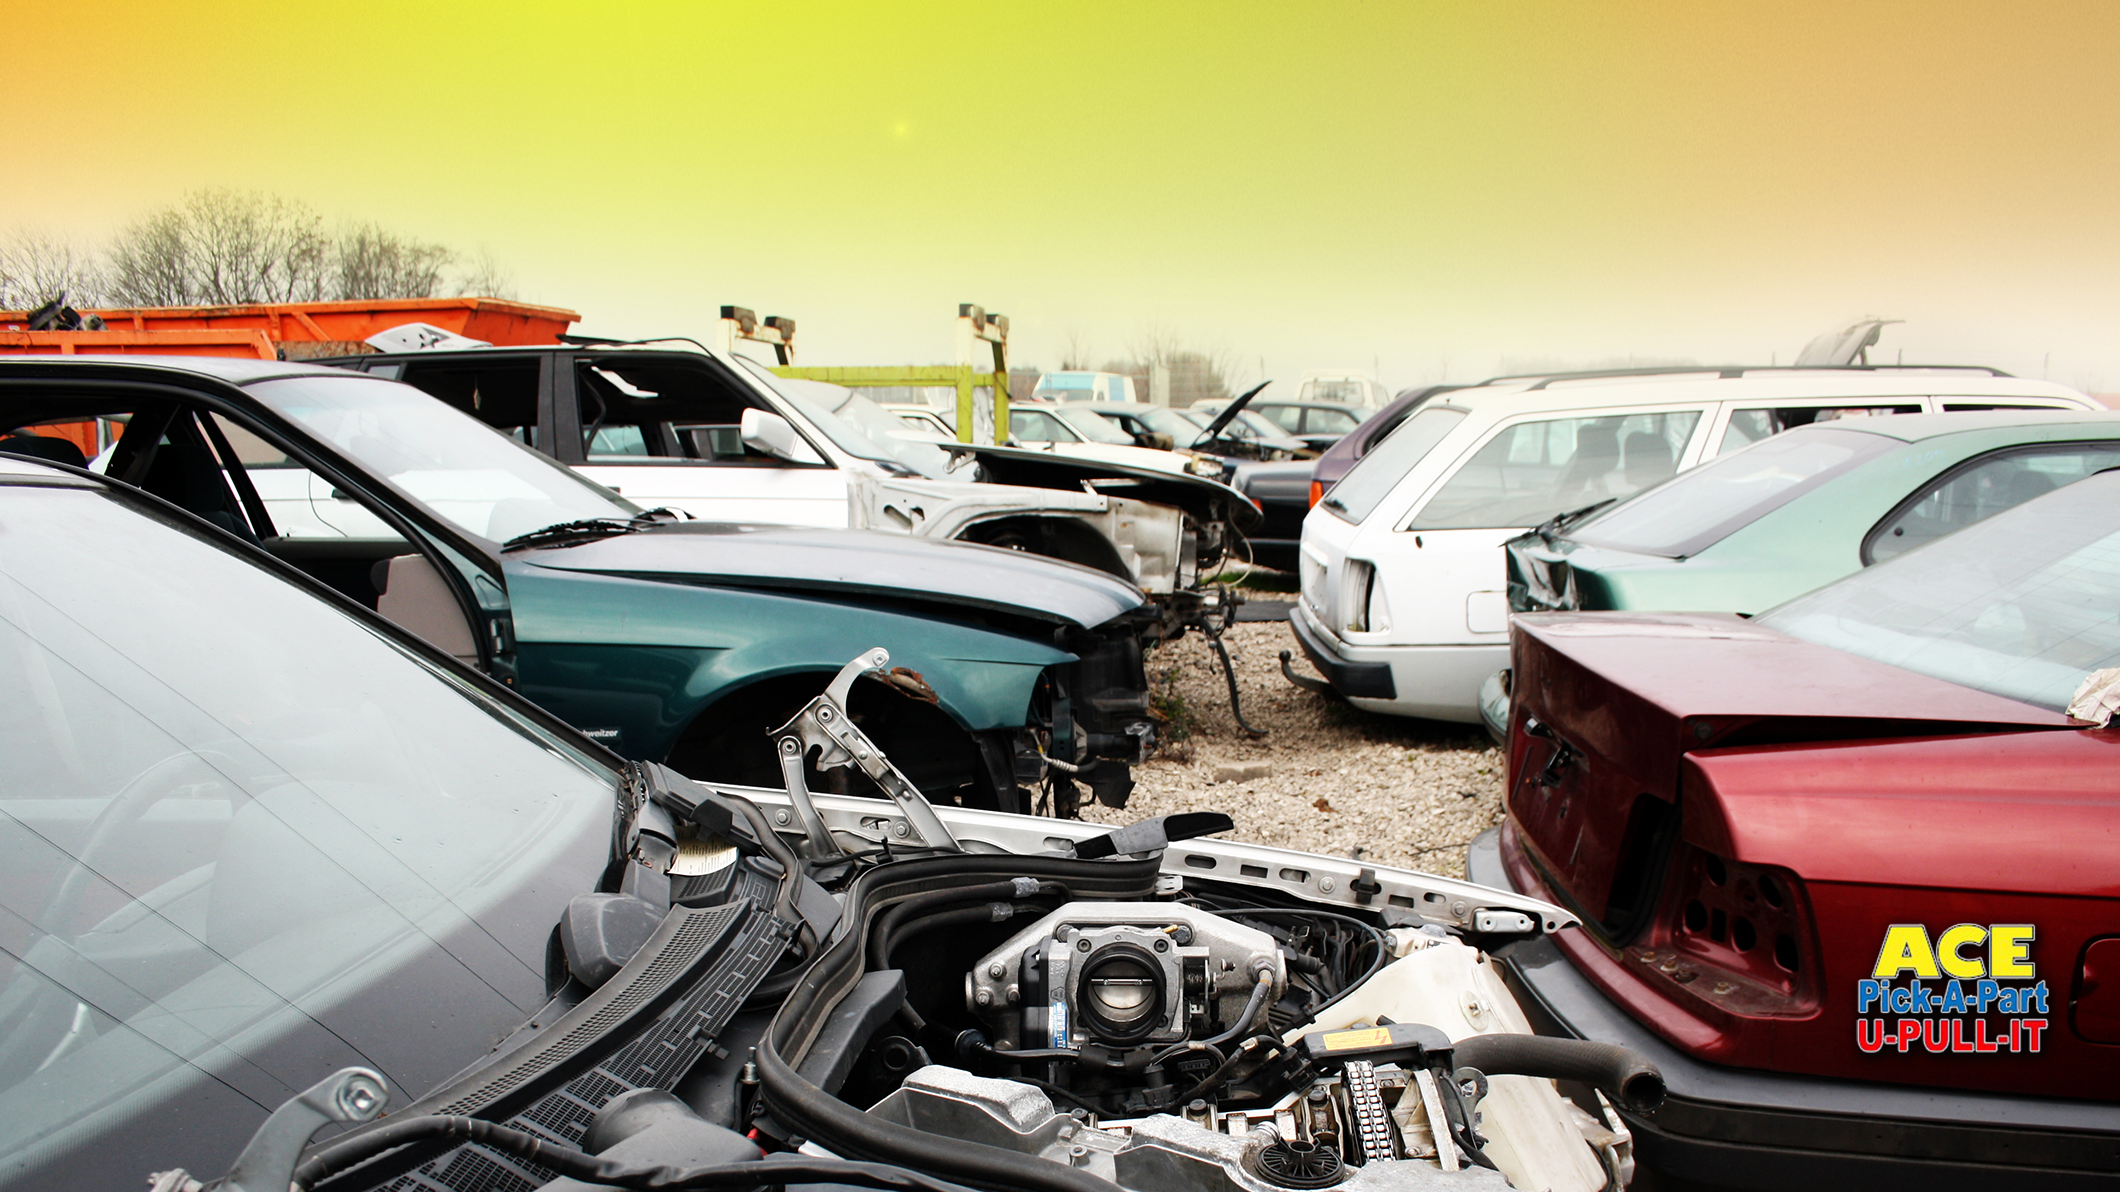 Old Fashioned Pick A Part Scrap Yard Image Classic Cars Ideas